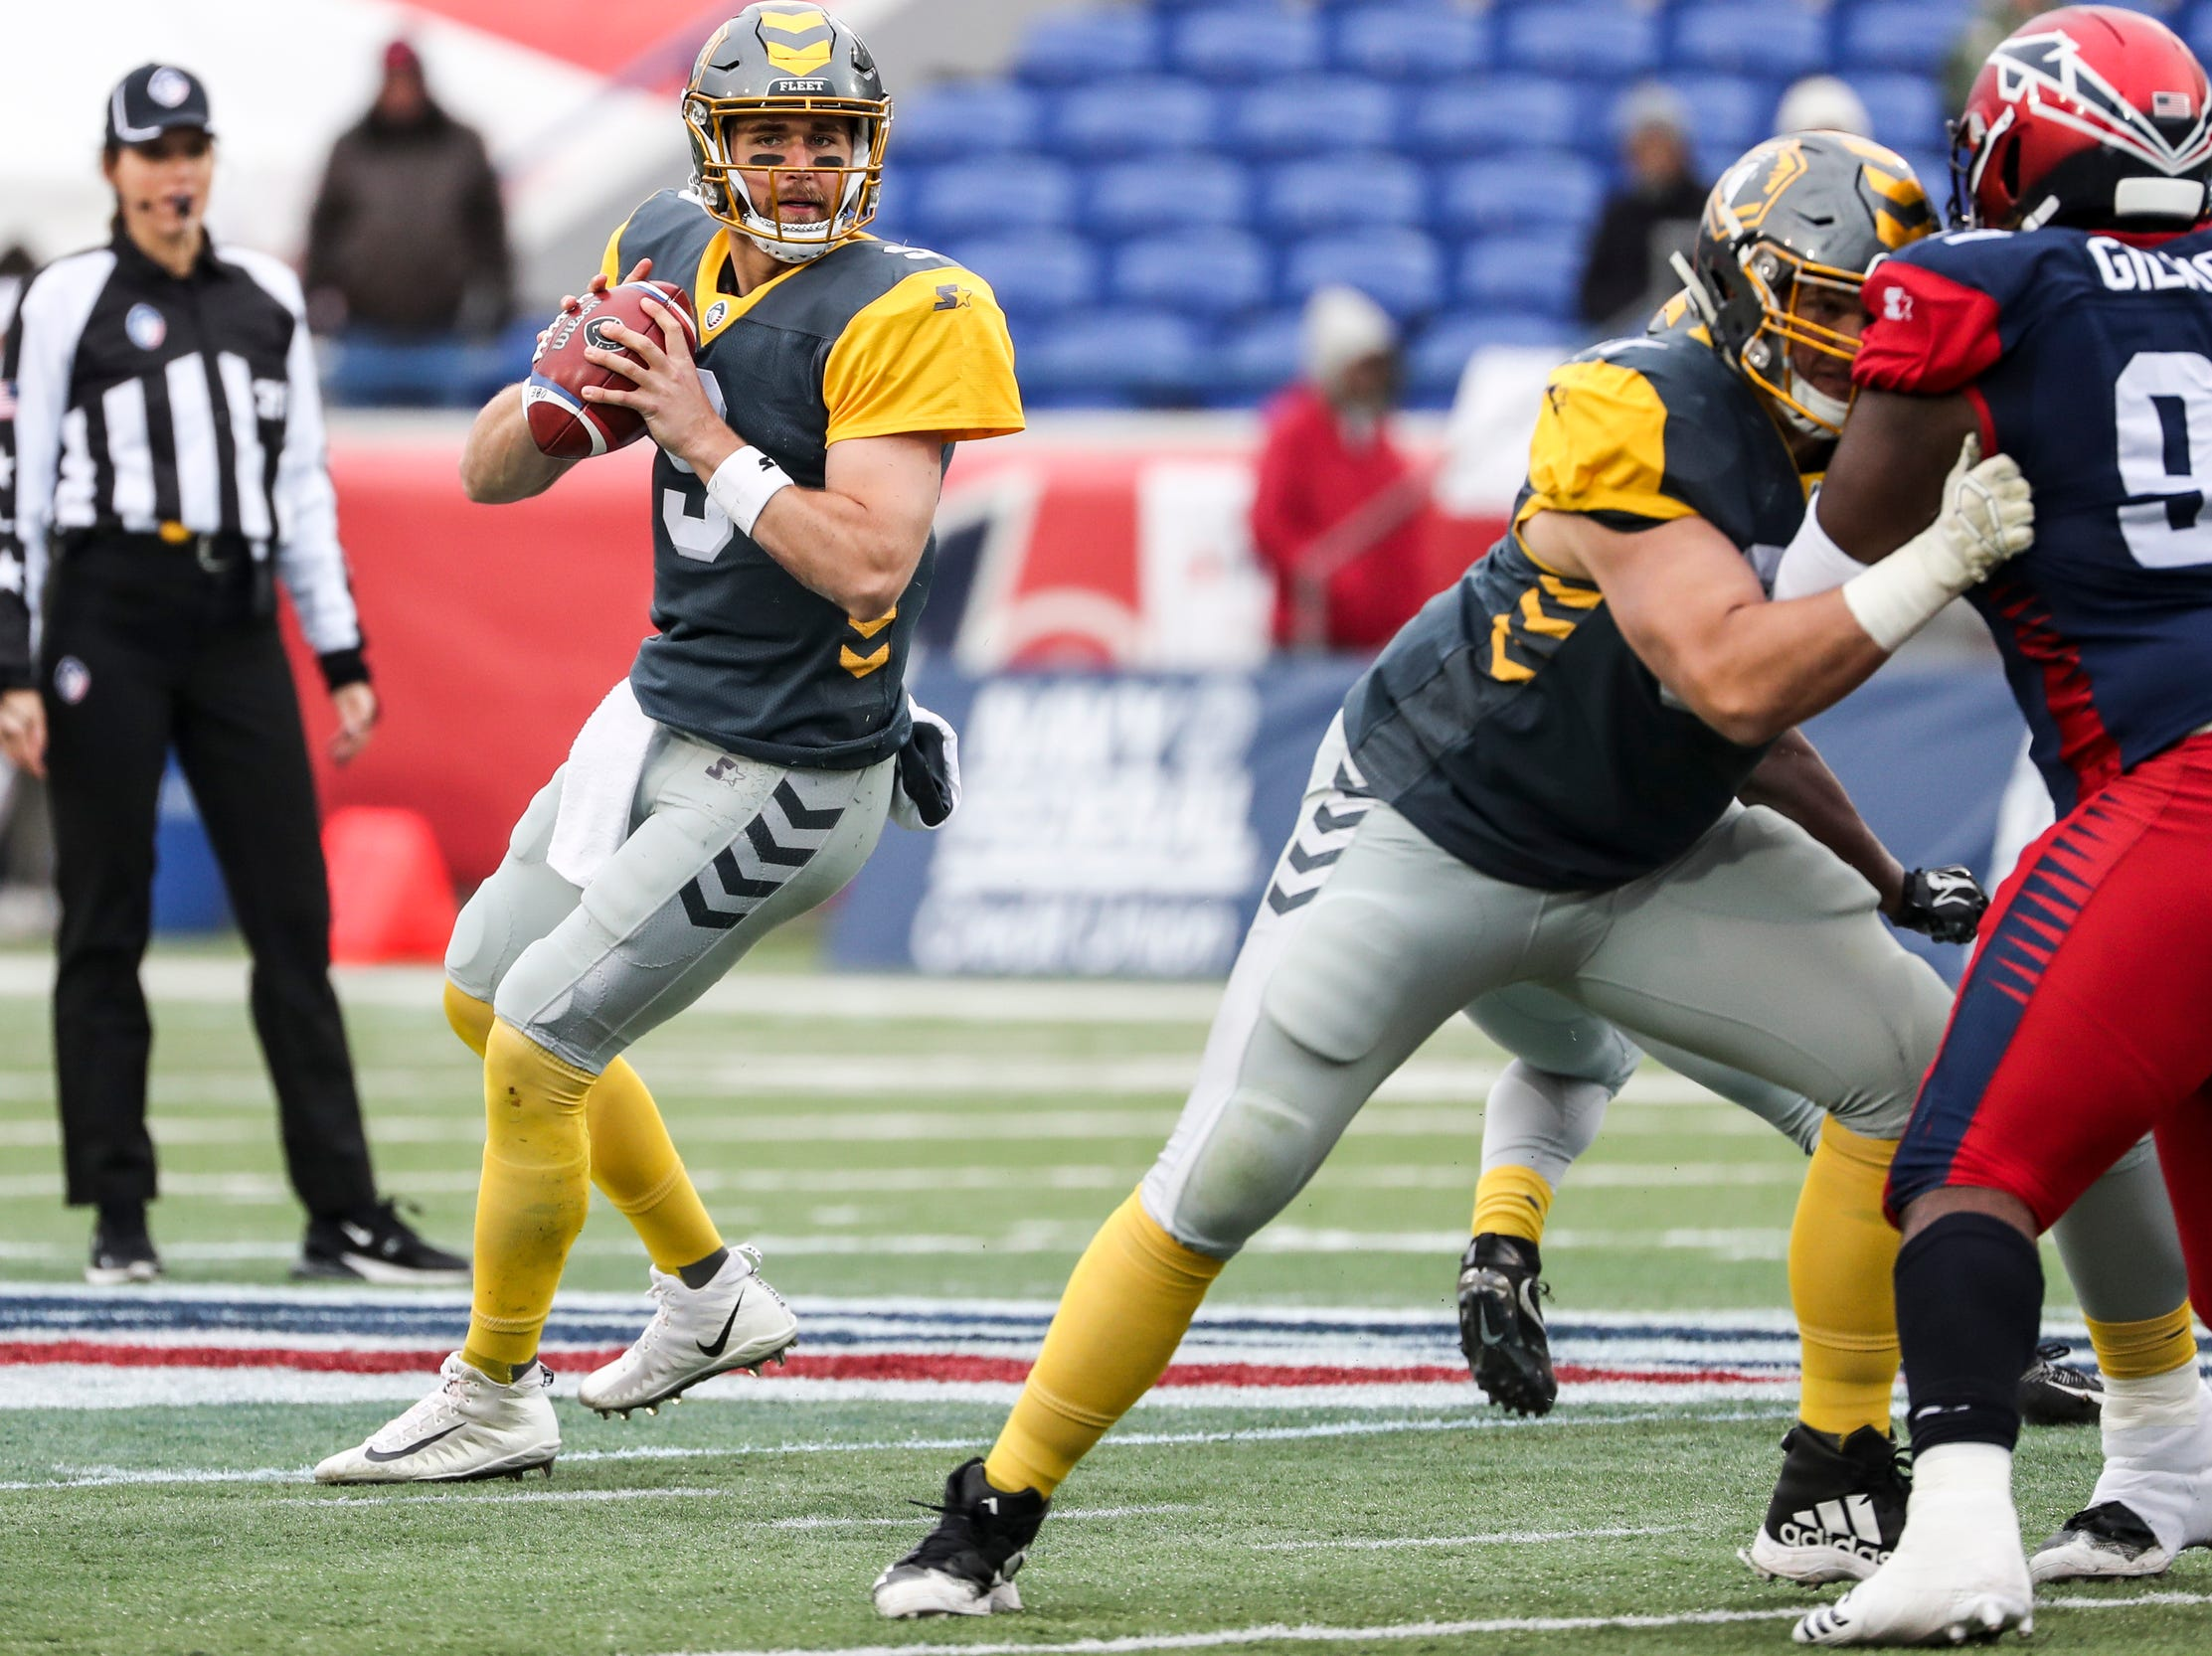 March 02, 2019 - San Diego's quarterback Philip Nelson looks to throw the ball during Saturday's game against the San Diego Fleet.